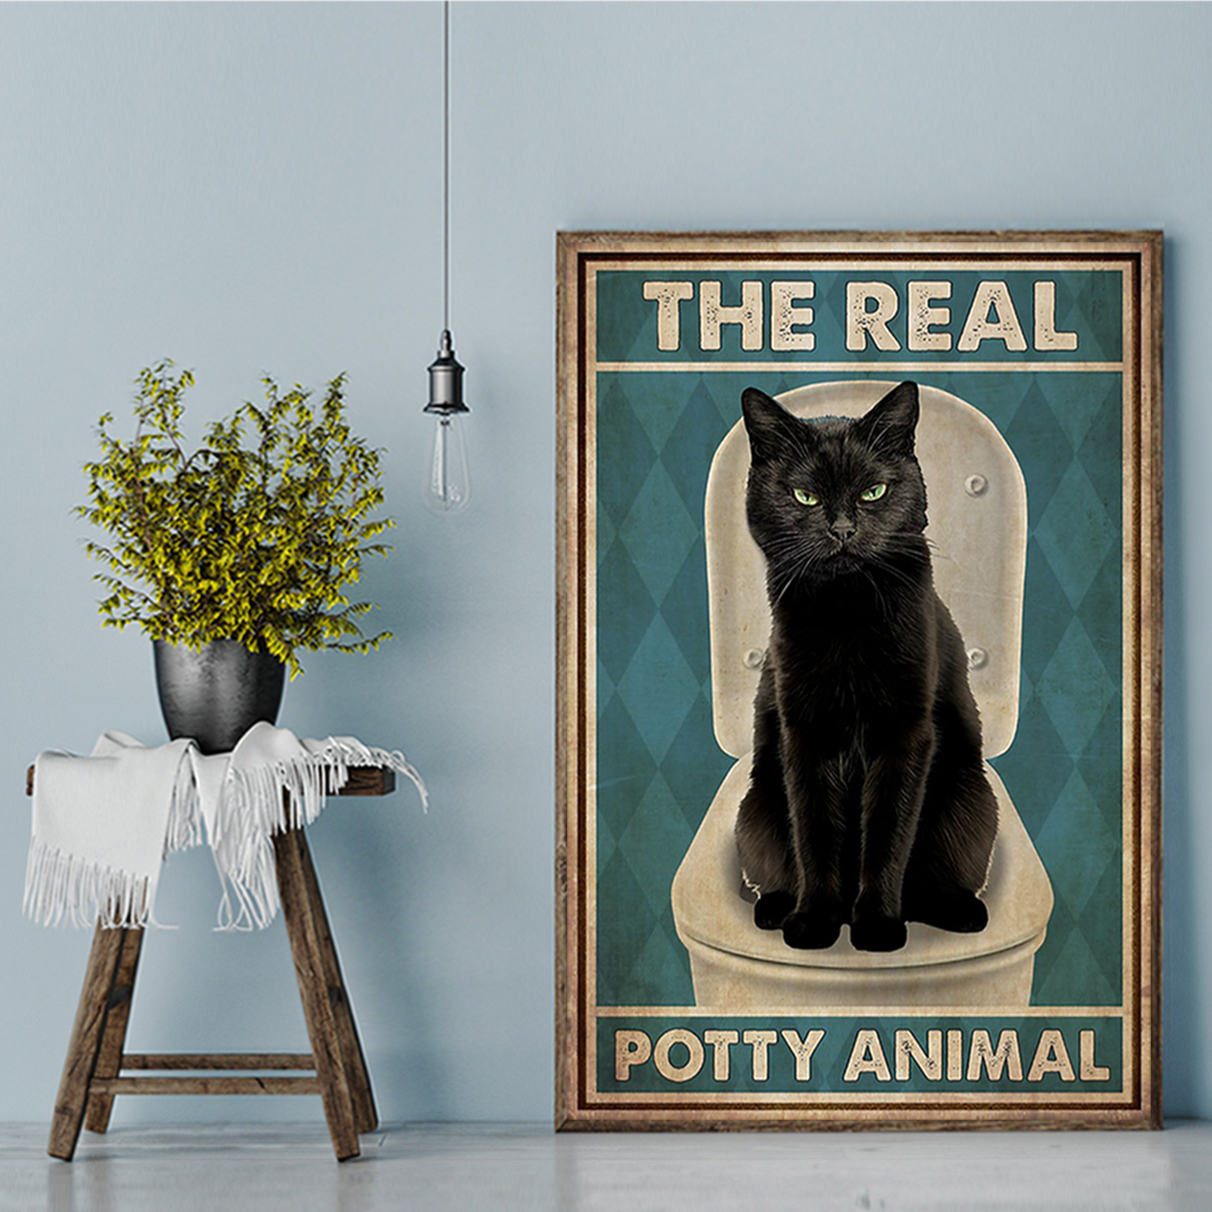 Cat The real potty animal poster A3